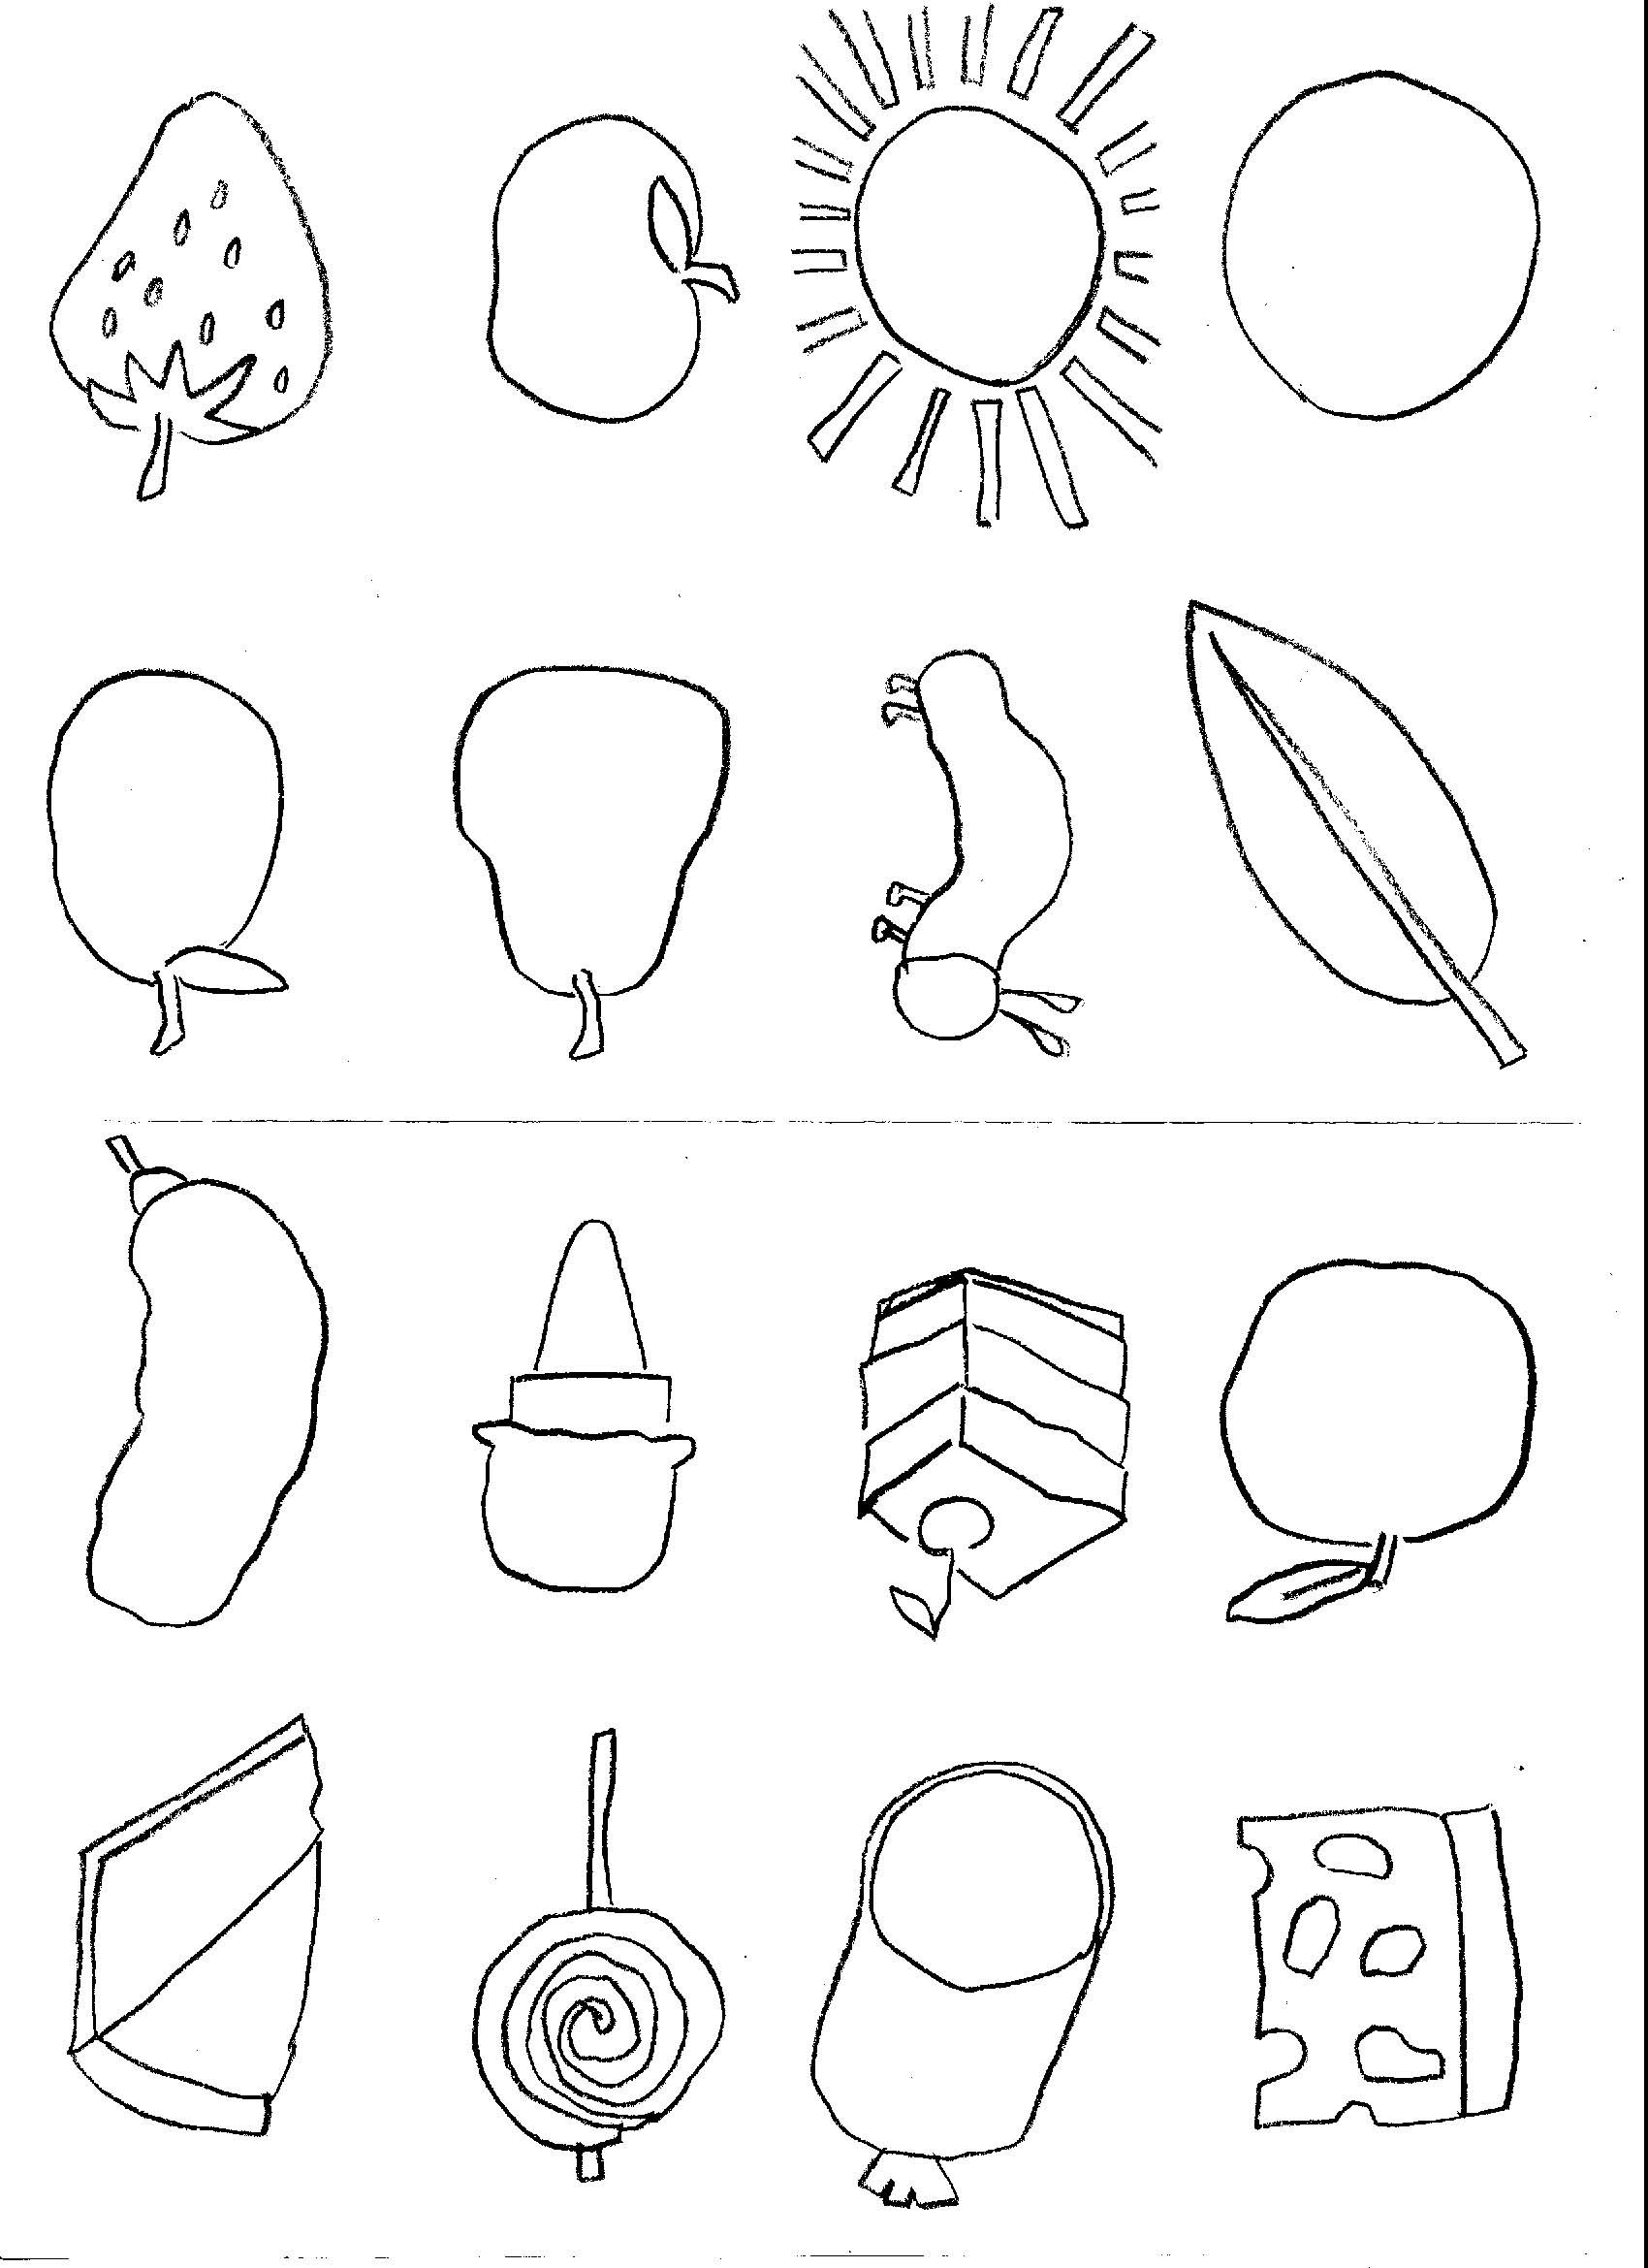 very hungry caterpillar colouring sheets the very hungry caterpillar colouring learningenglish esl hungry colouring very caterpillar sheets